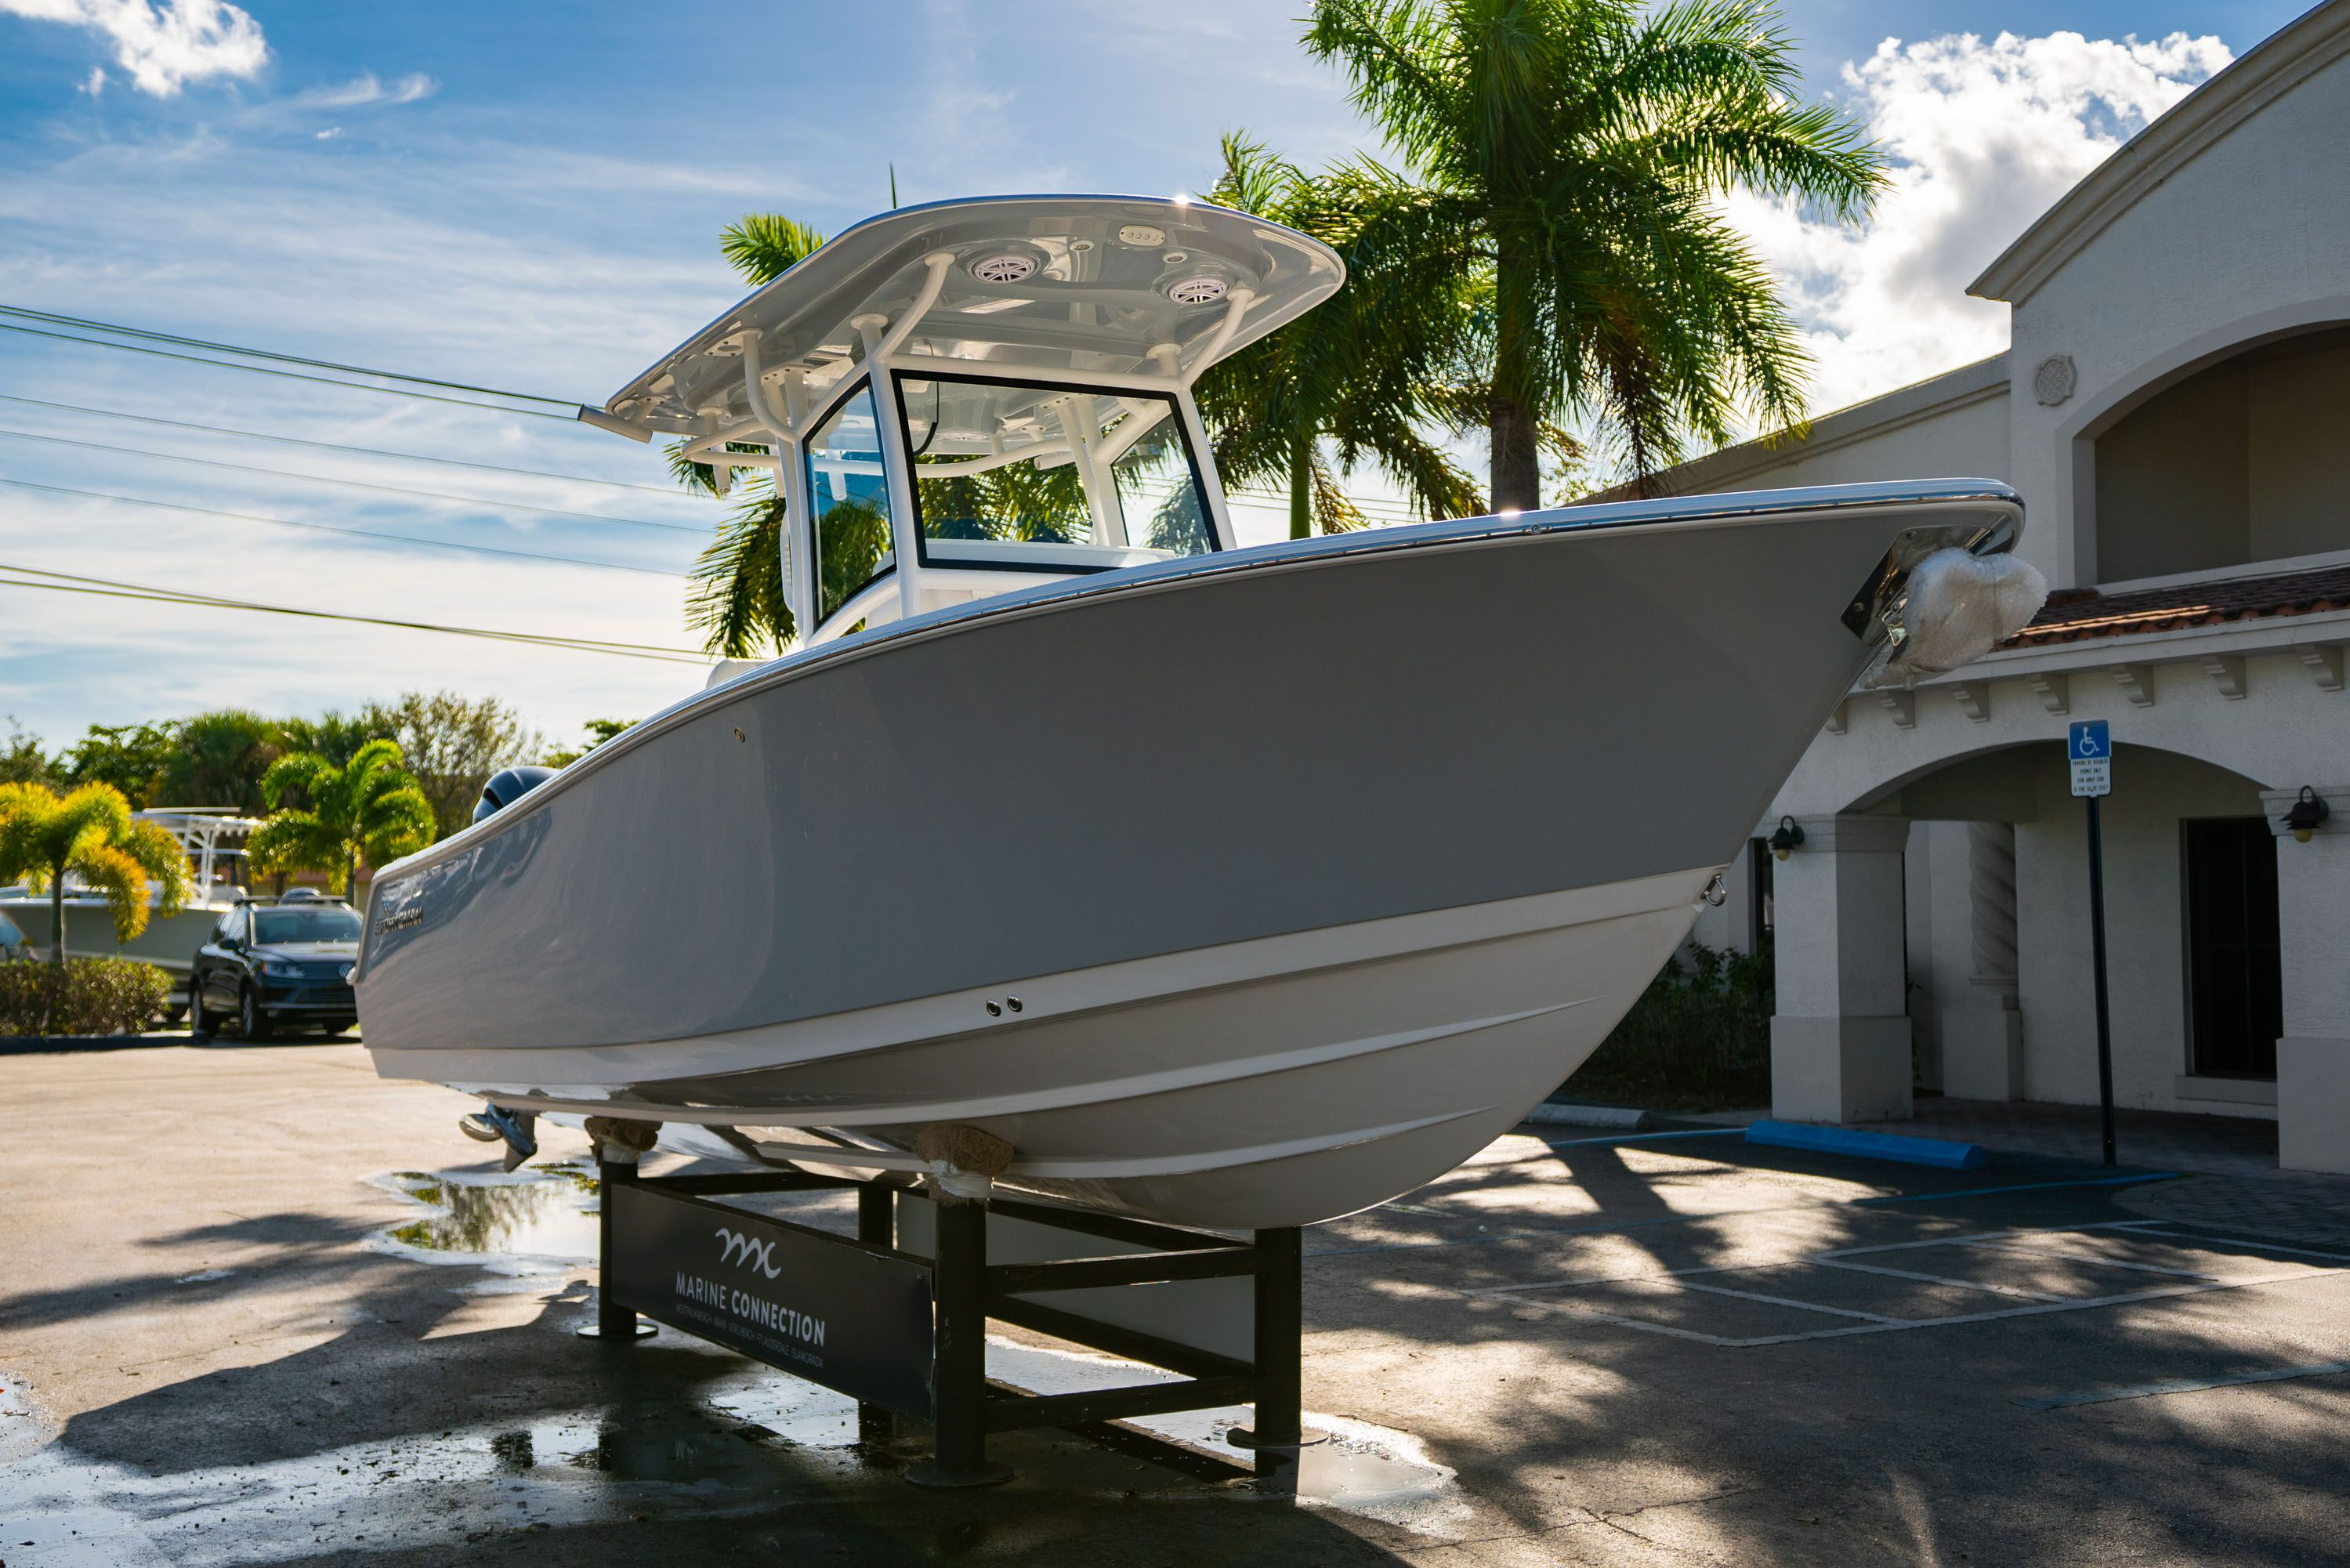 Thumbnail 1 for New 2020 Sportsman Open 252 Center Console boat for sale in West Palm Beach, FL